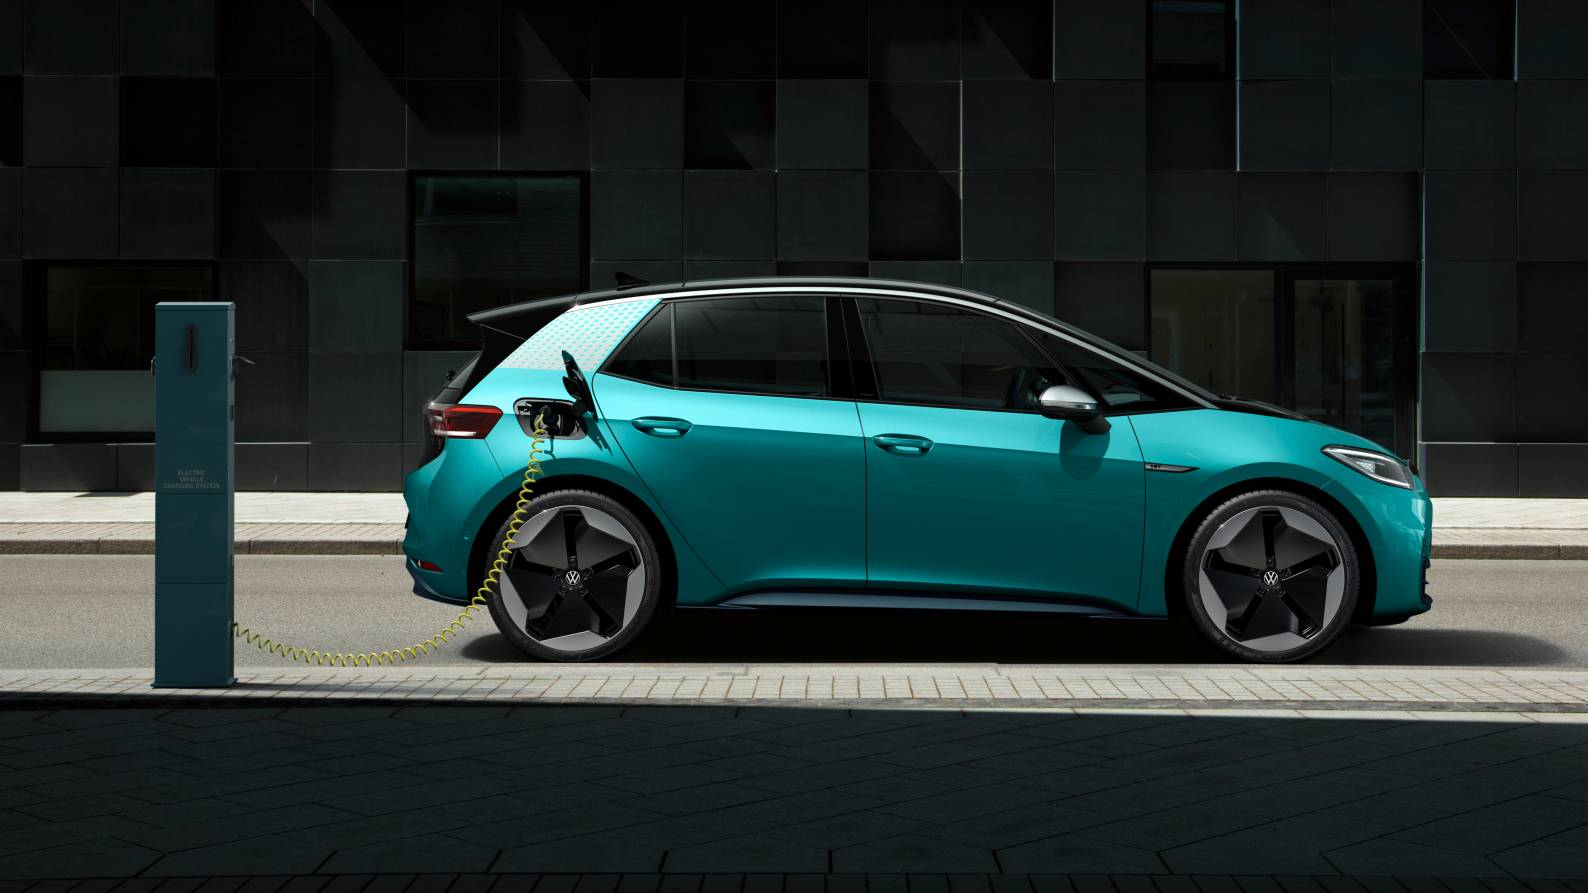 Volkswagen is investing 100 million euros to form a joint venture to build batteries with the German firm Customcells. Image: Volkswagen